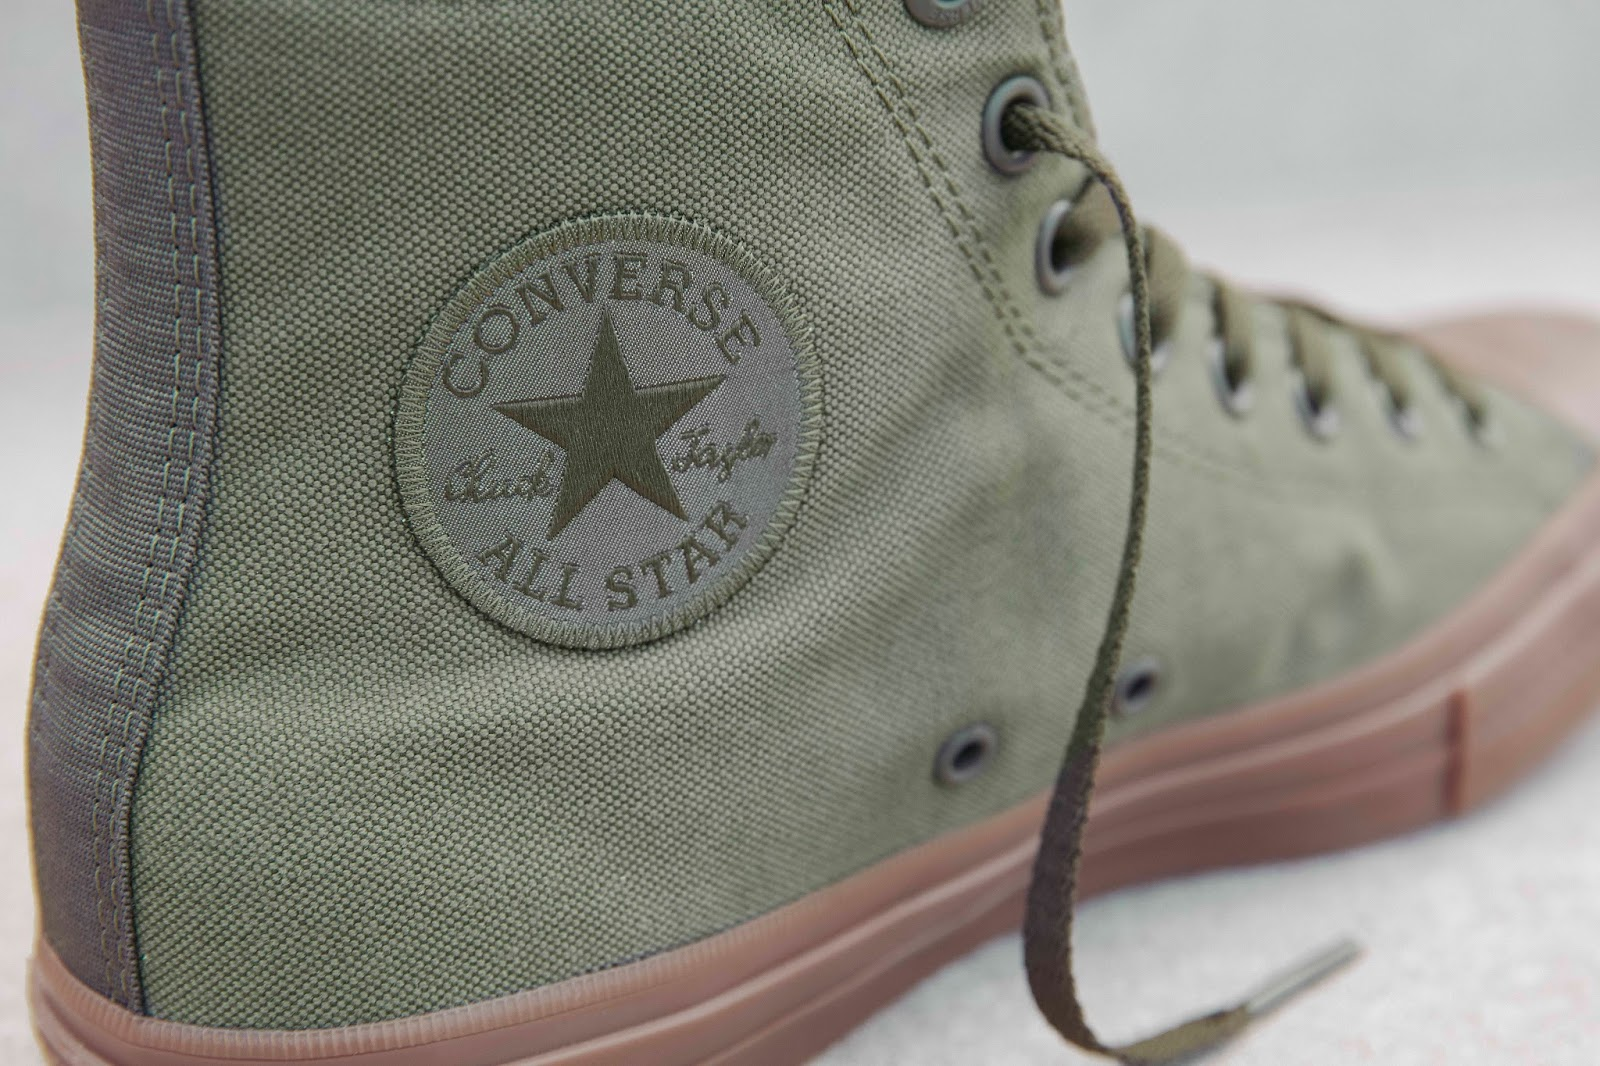 b19b56e0f7cc The Converse Chuck Taylor All Star II Gum is the sequel to the classic All  Star sneaker. It mixes things up with gum rubber soles instead of a regular  ...